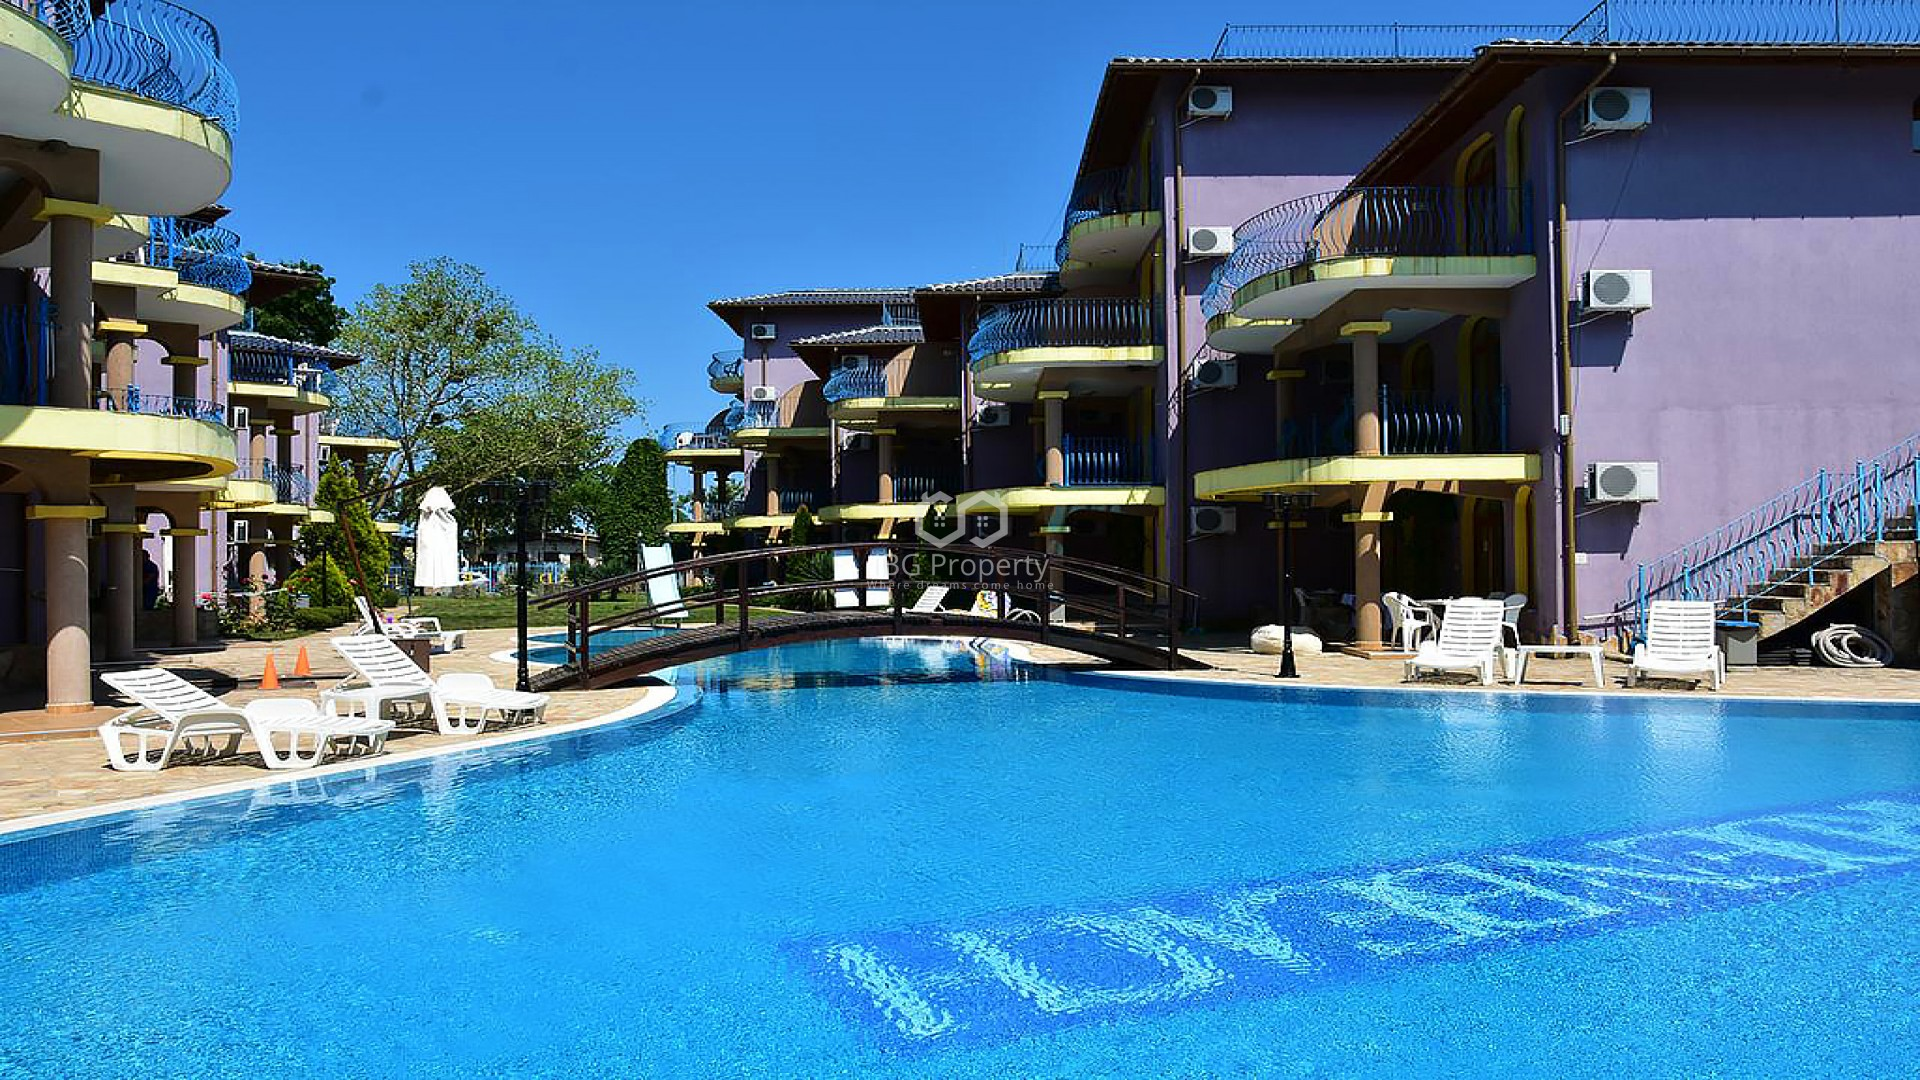 One bedroom apartment Sozopol 50 m2